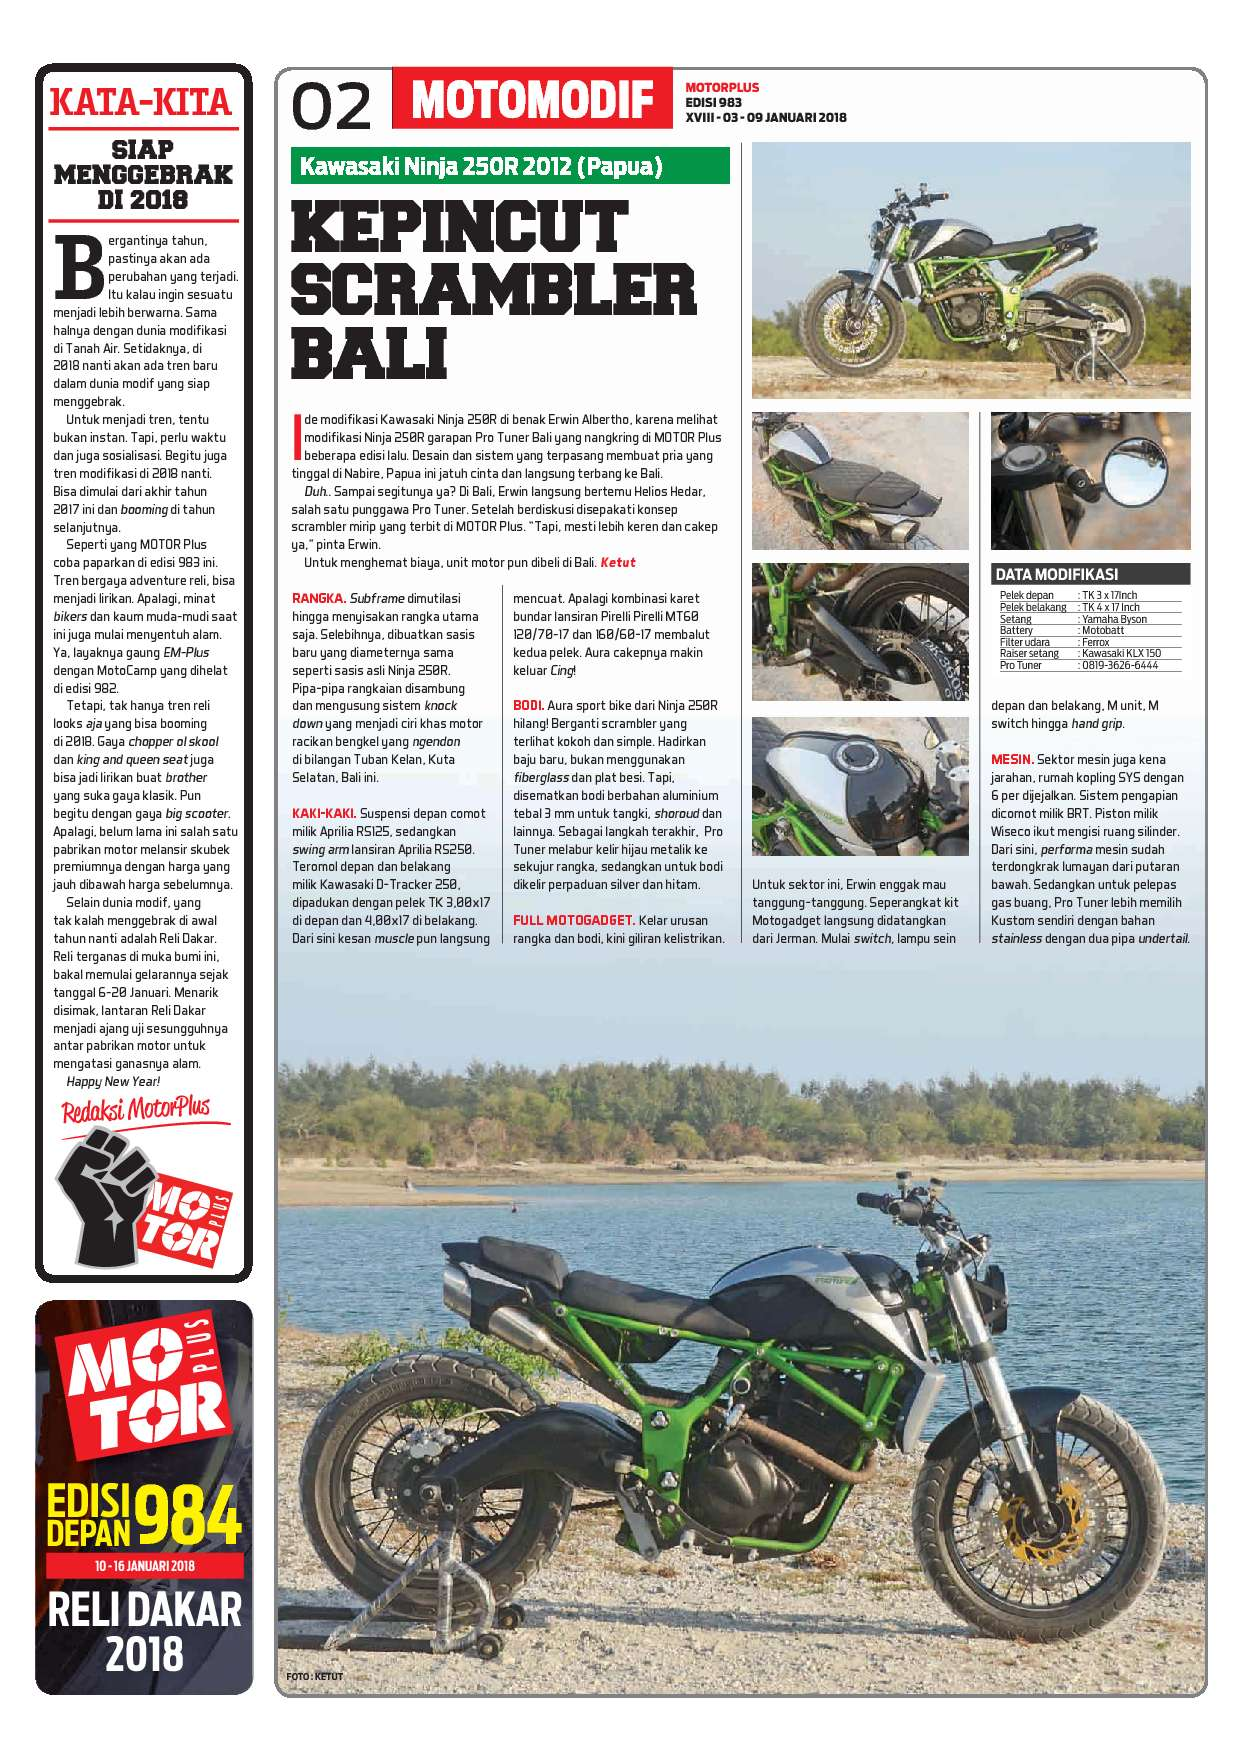 Motor Plus Magazine Ed 983 January 2018 Gramedia Digital Filter Udara Ferrox Kawasaki Ninja 150r 3